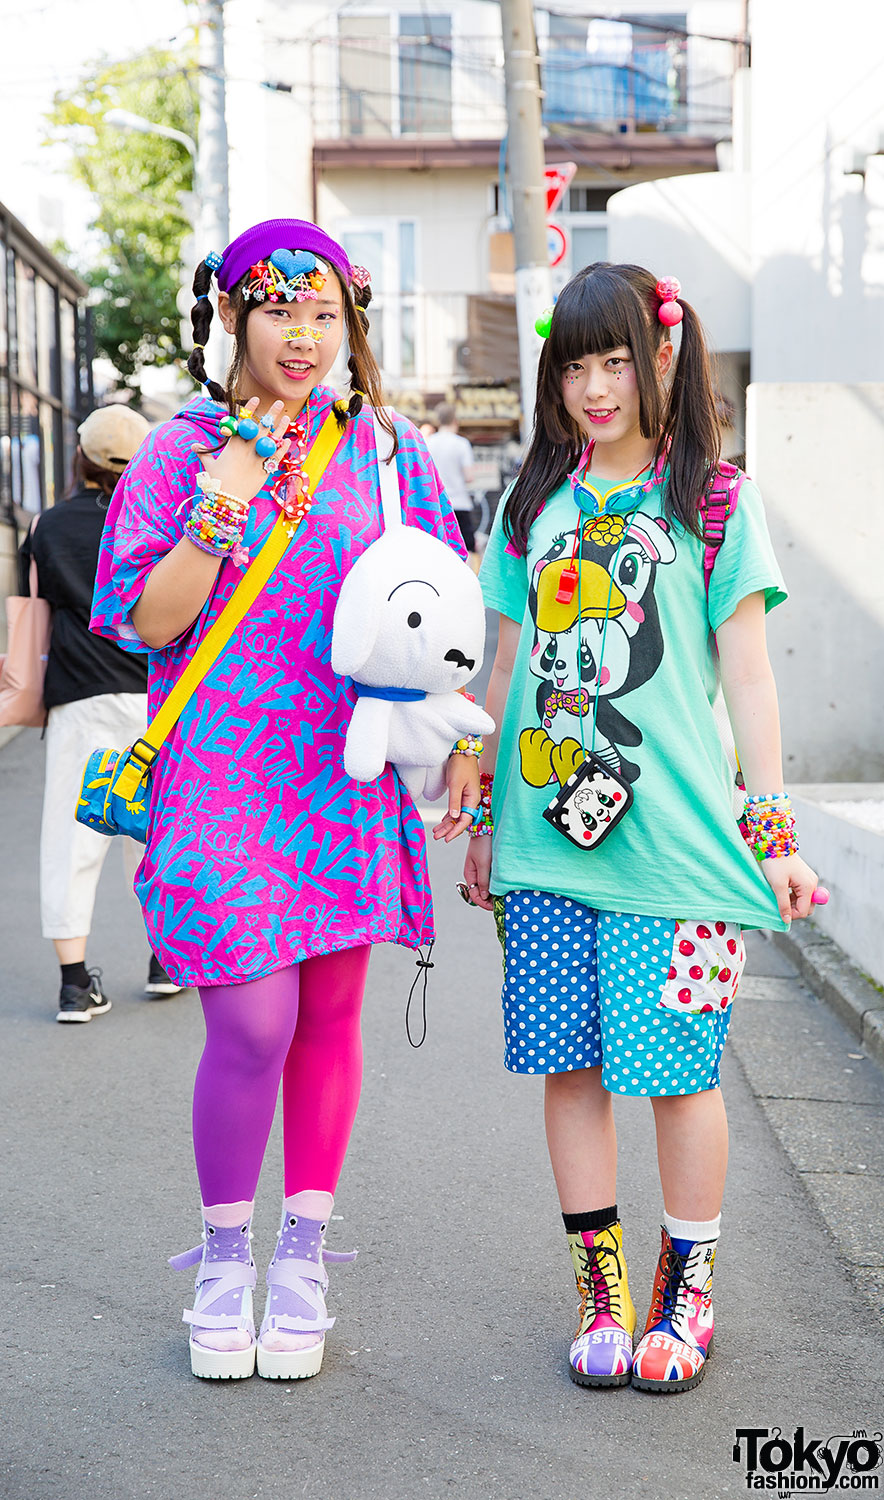 Girl Fashion Magazine: Harajuku Girls In Colorful Fashion W/ Super Lovers